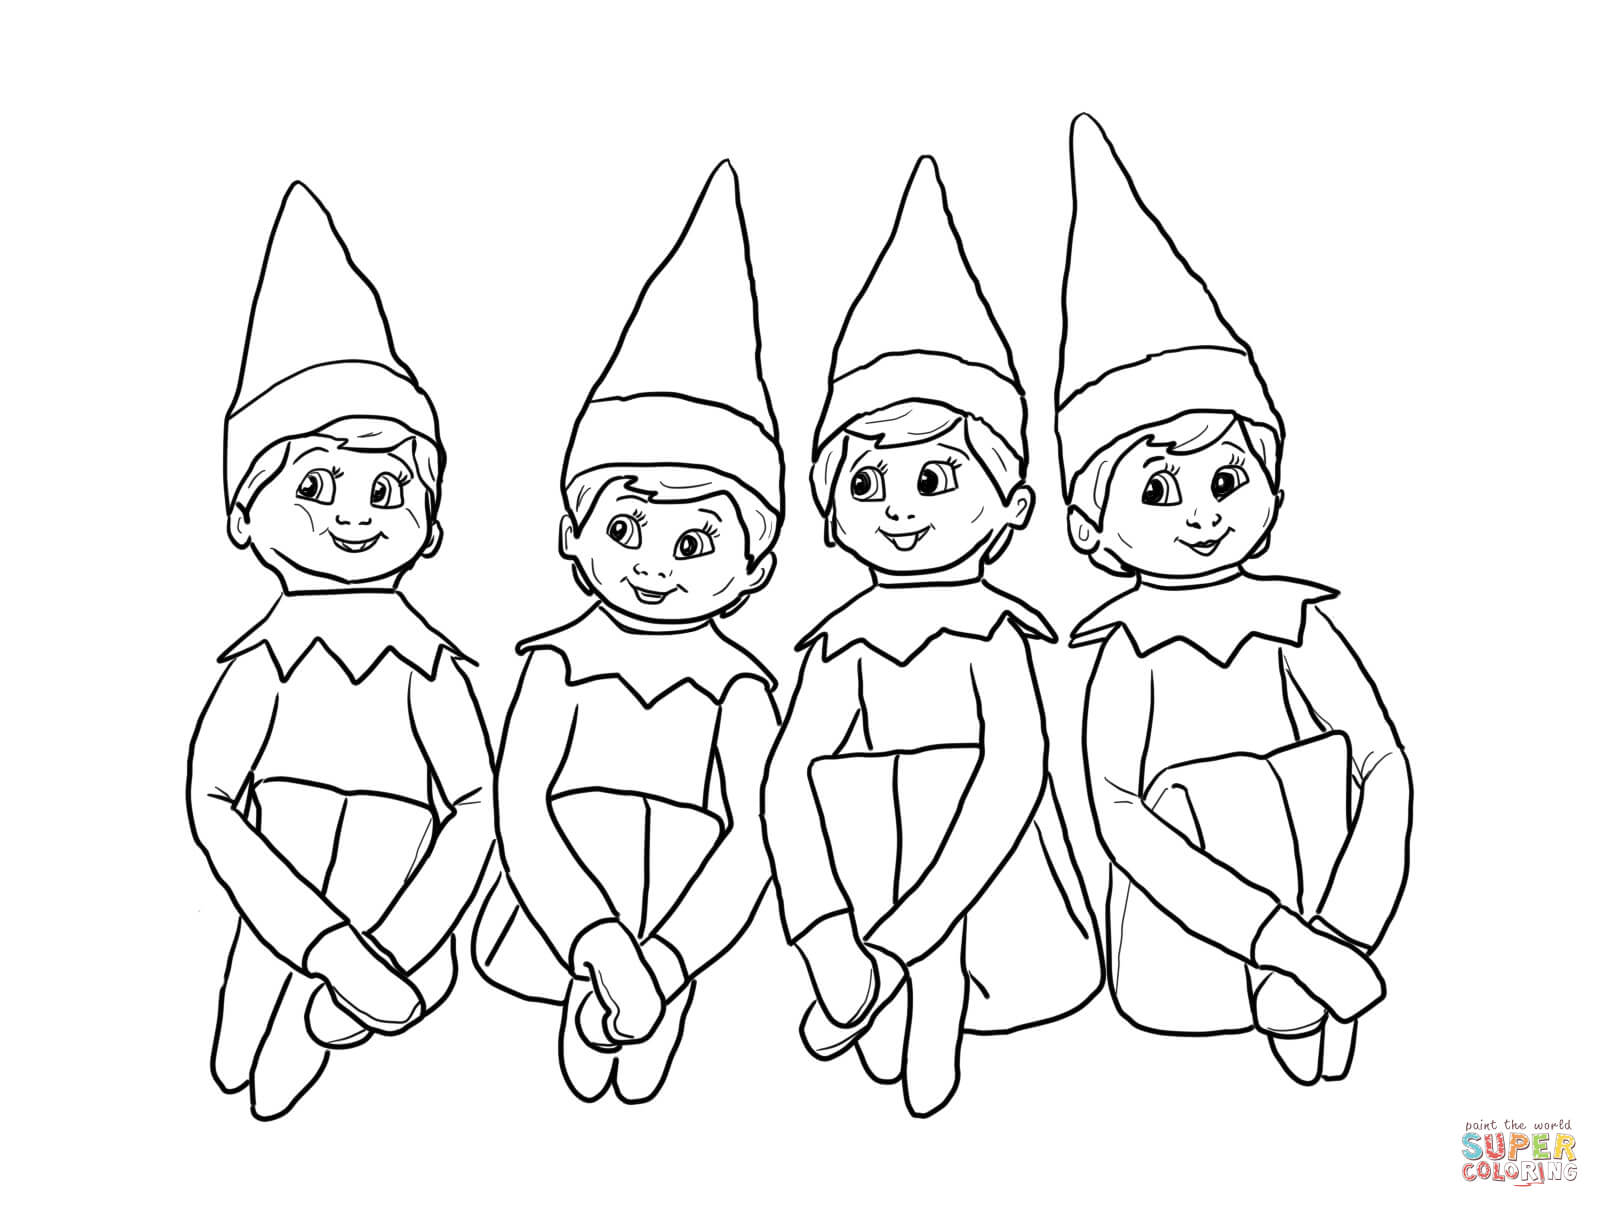 coloring pages elves coloring pages elves elves coloring pages